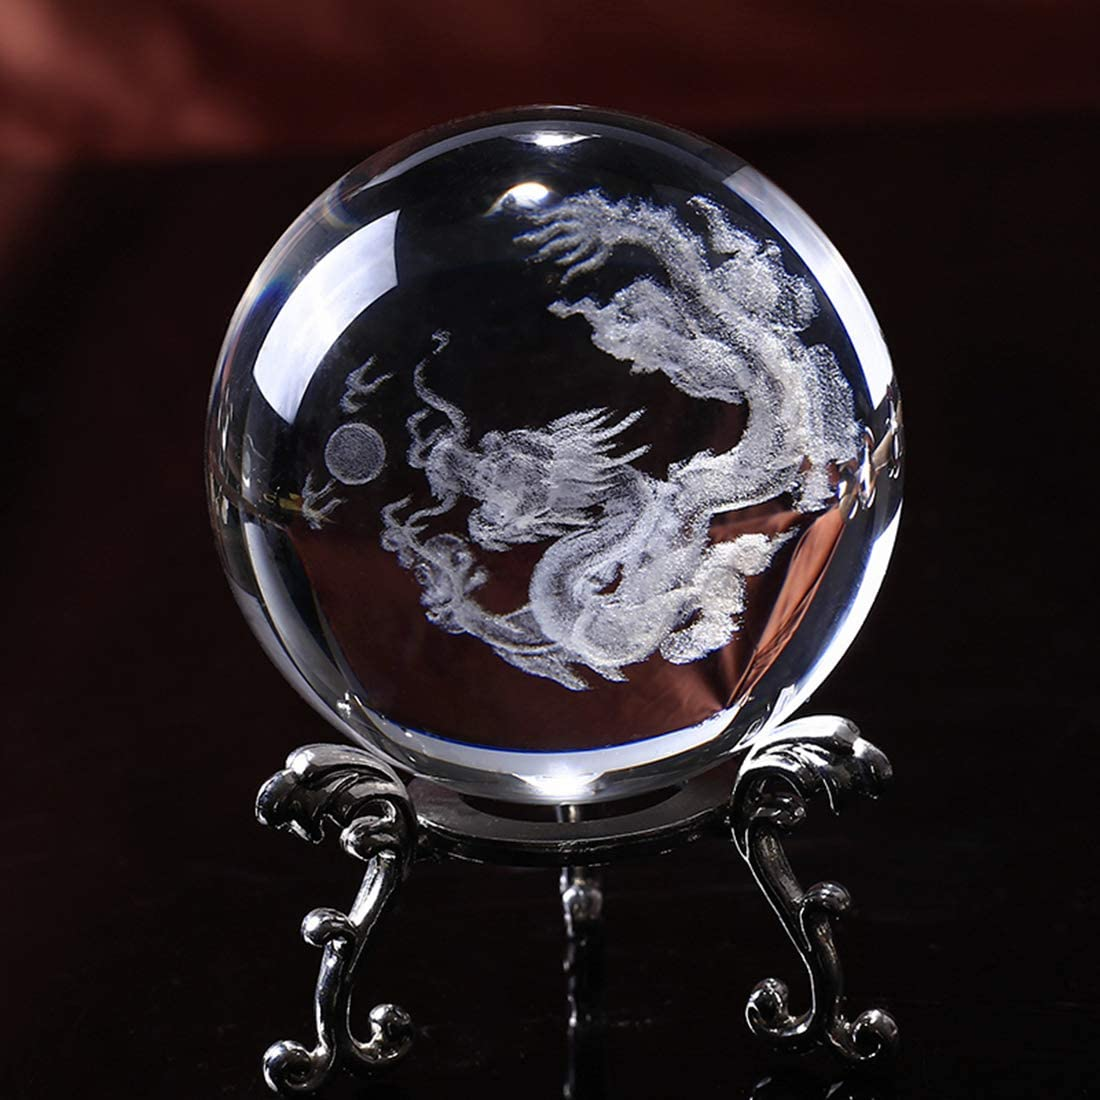 HDCRYSTALGIFTS Crystal 2.4 inch (60mm) Chinese Dragon Crystal Ball with Sliver-Plated Flowering Stand,Fengshui Glass Loong Ball Home Decoration